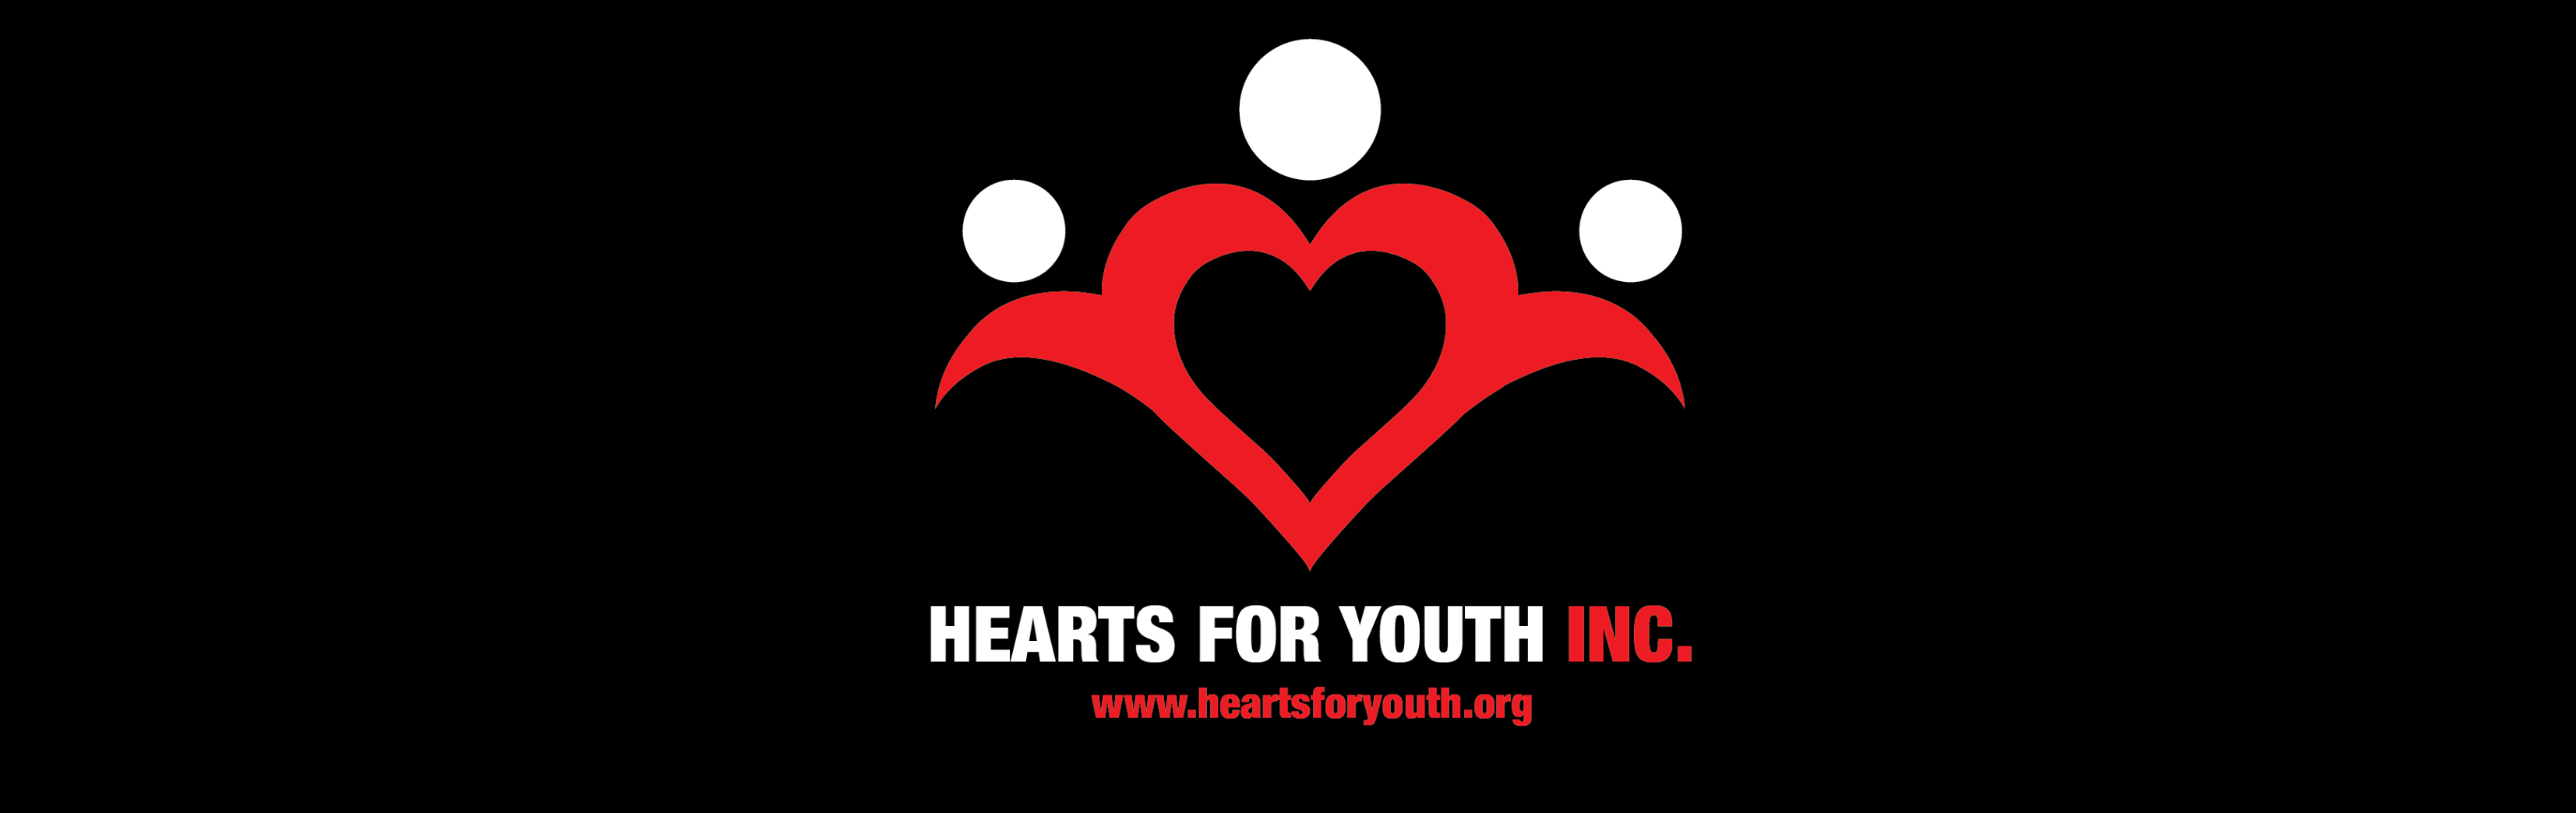 Hearts for youth